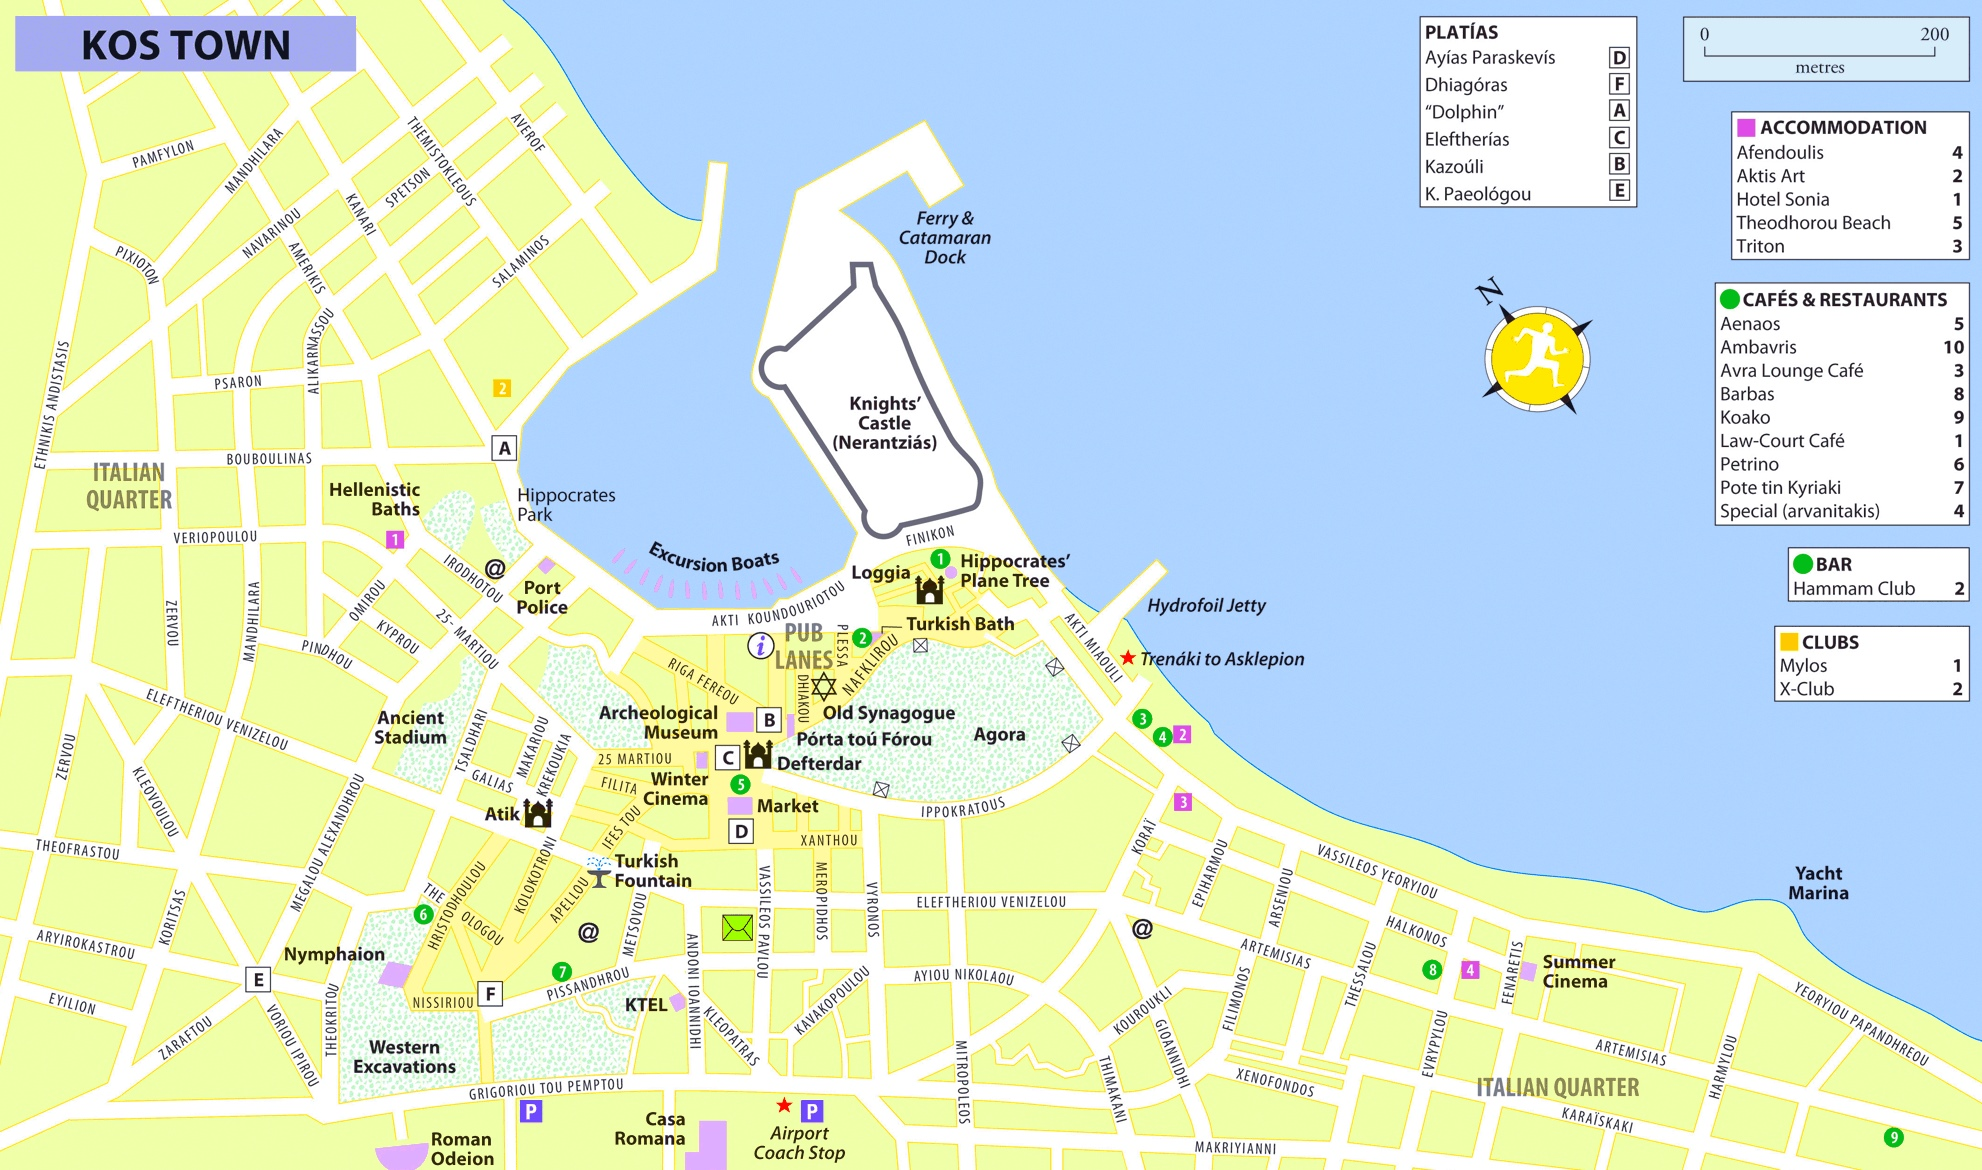 Kos city hotels and sightseeings map kos city hotels and sightseeings map gumiabroncs Choice Image